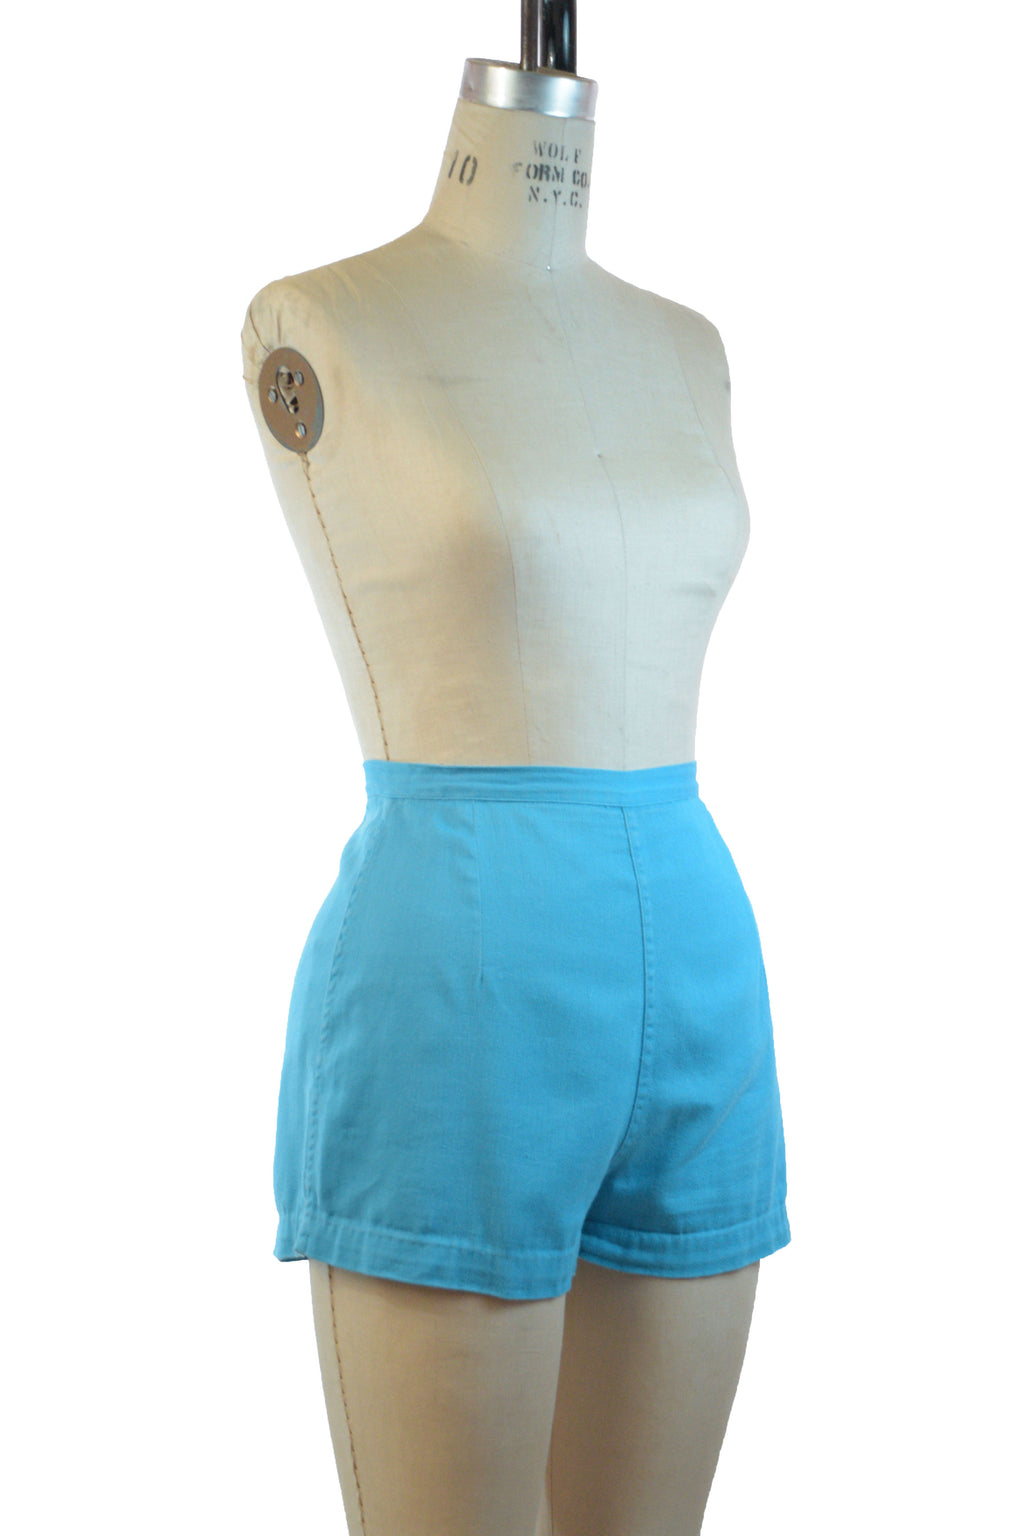 Sassy 1950s Super Short Shorts in Bright Turquoise Blue Cotton